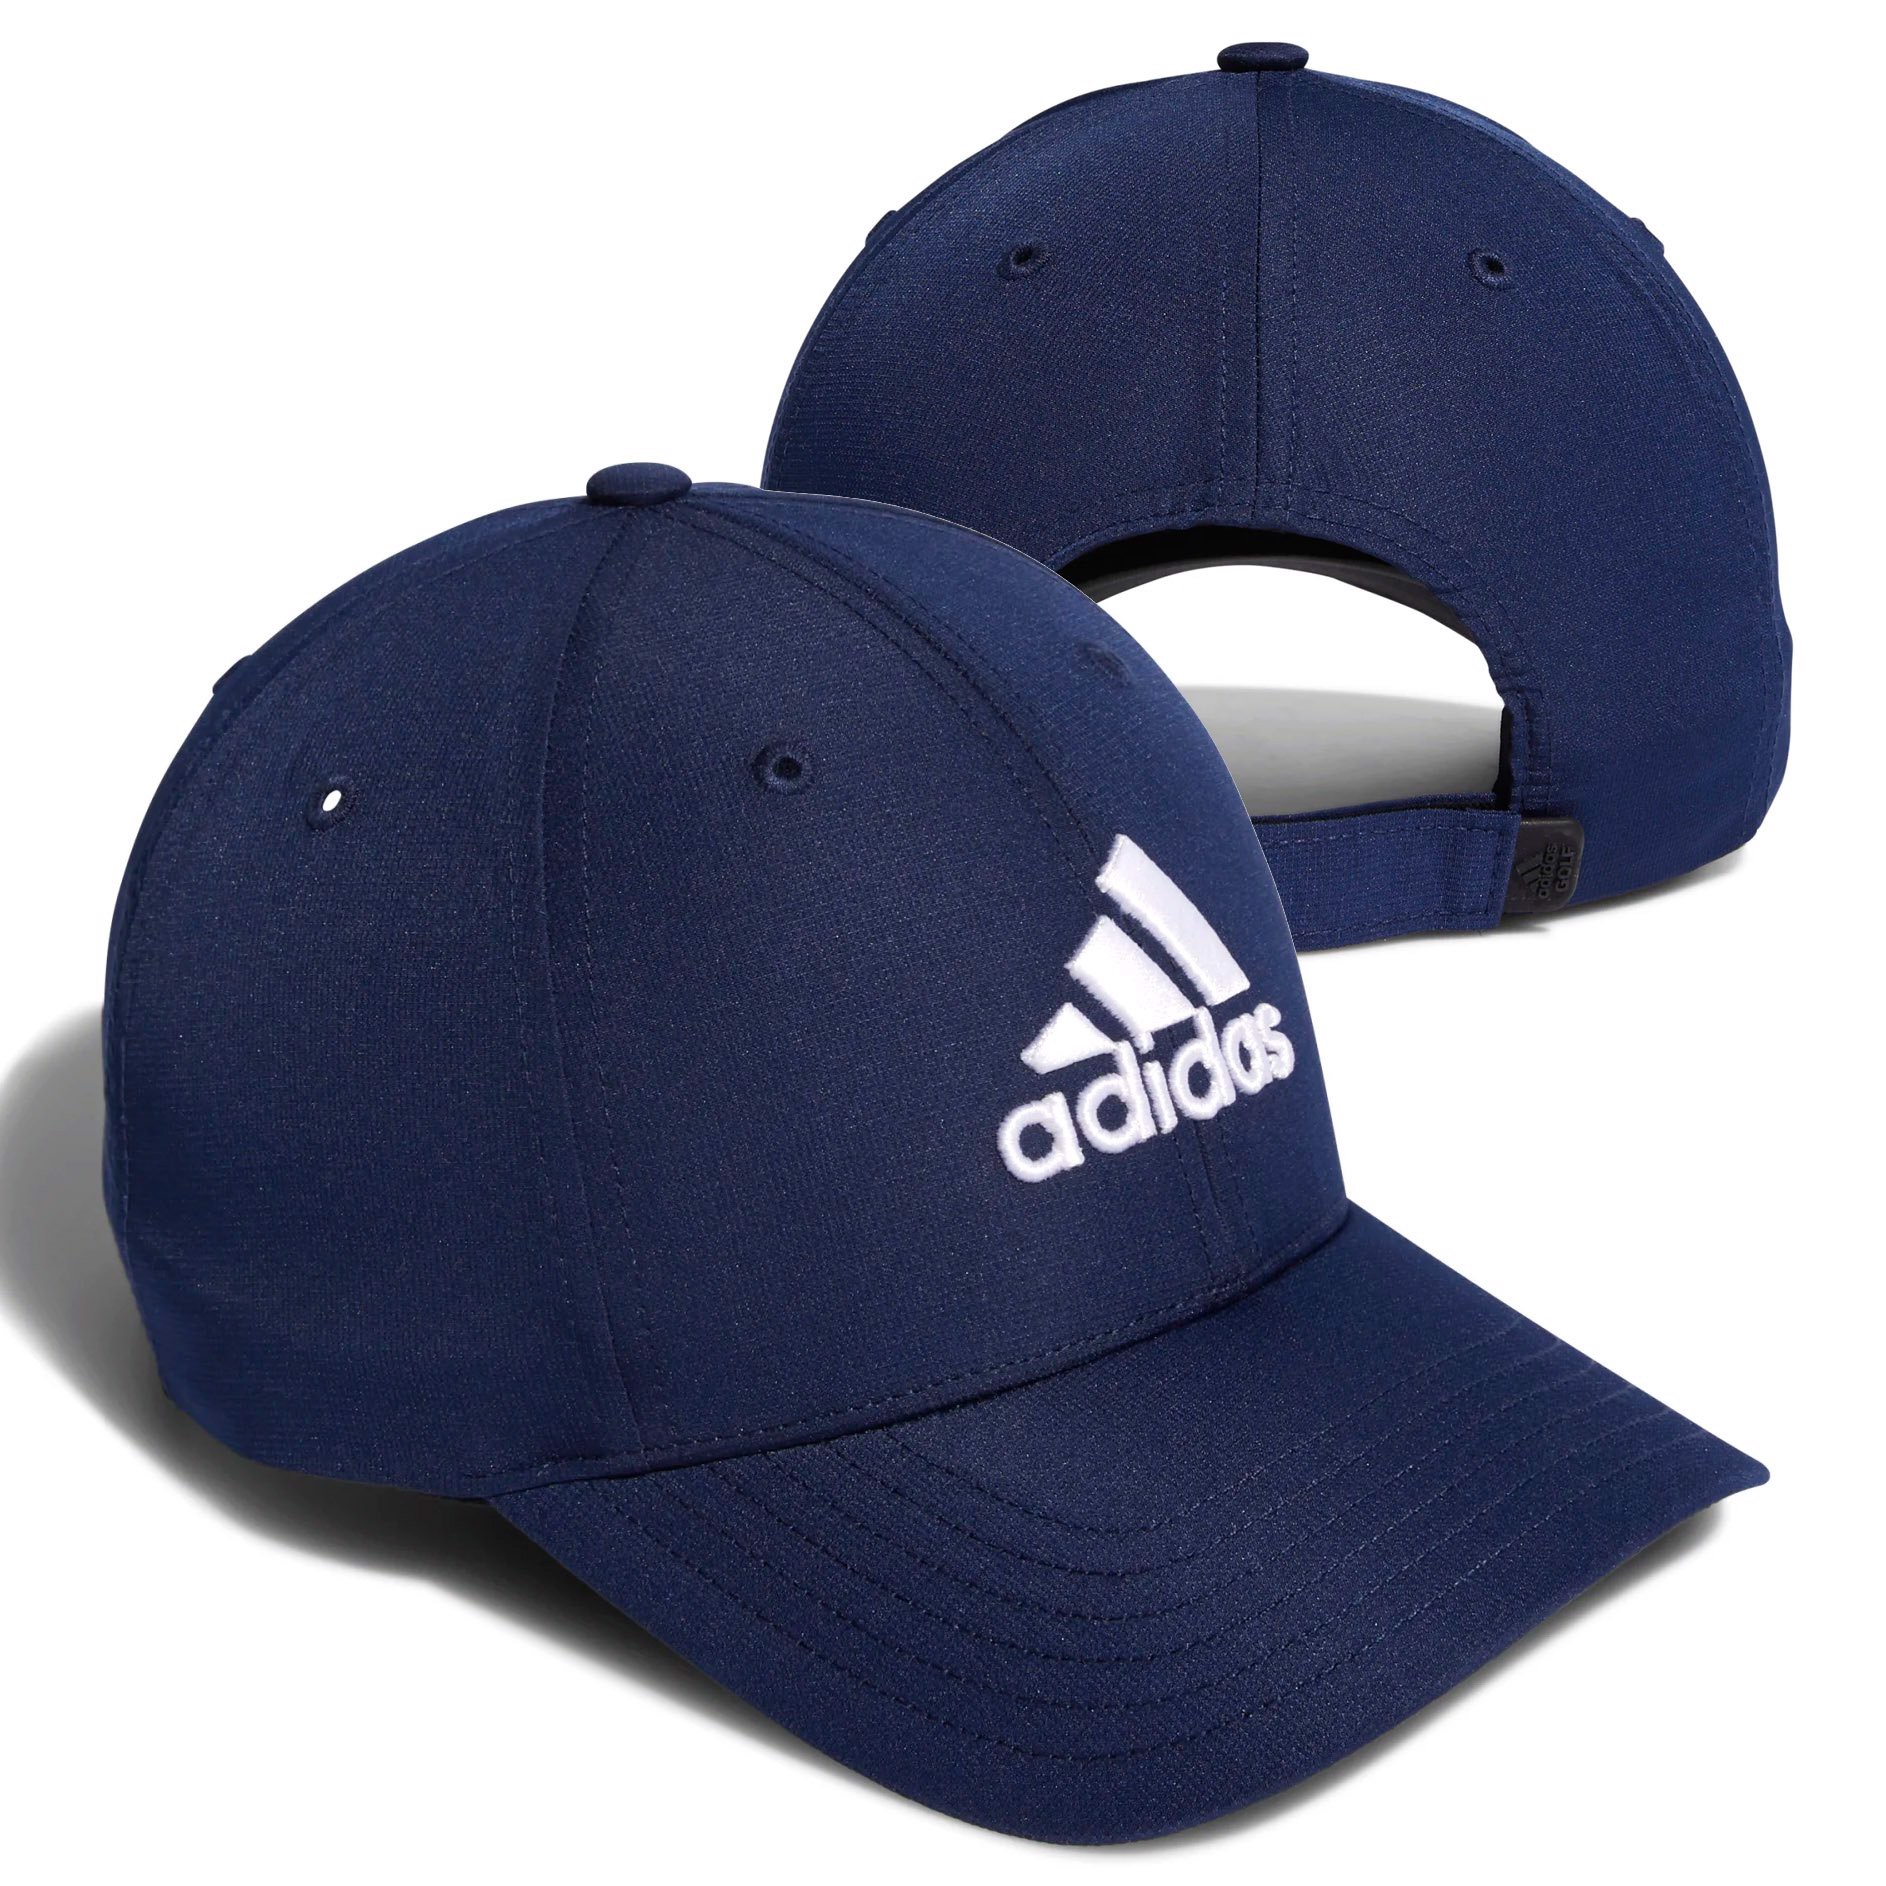 Nón kết golf nam PERFORMANCE Adidas